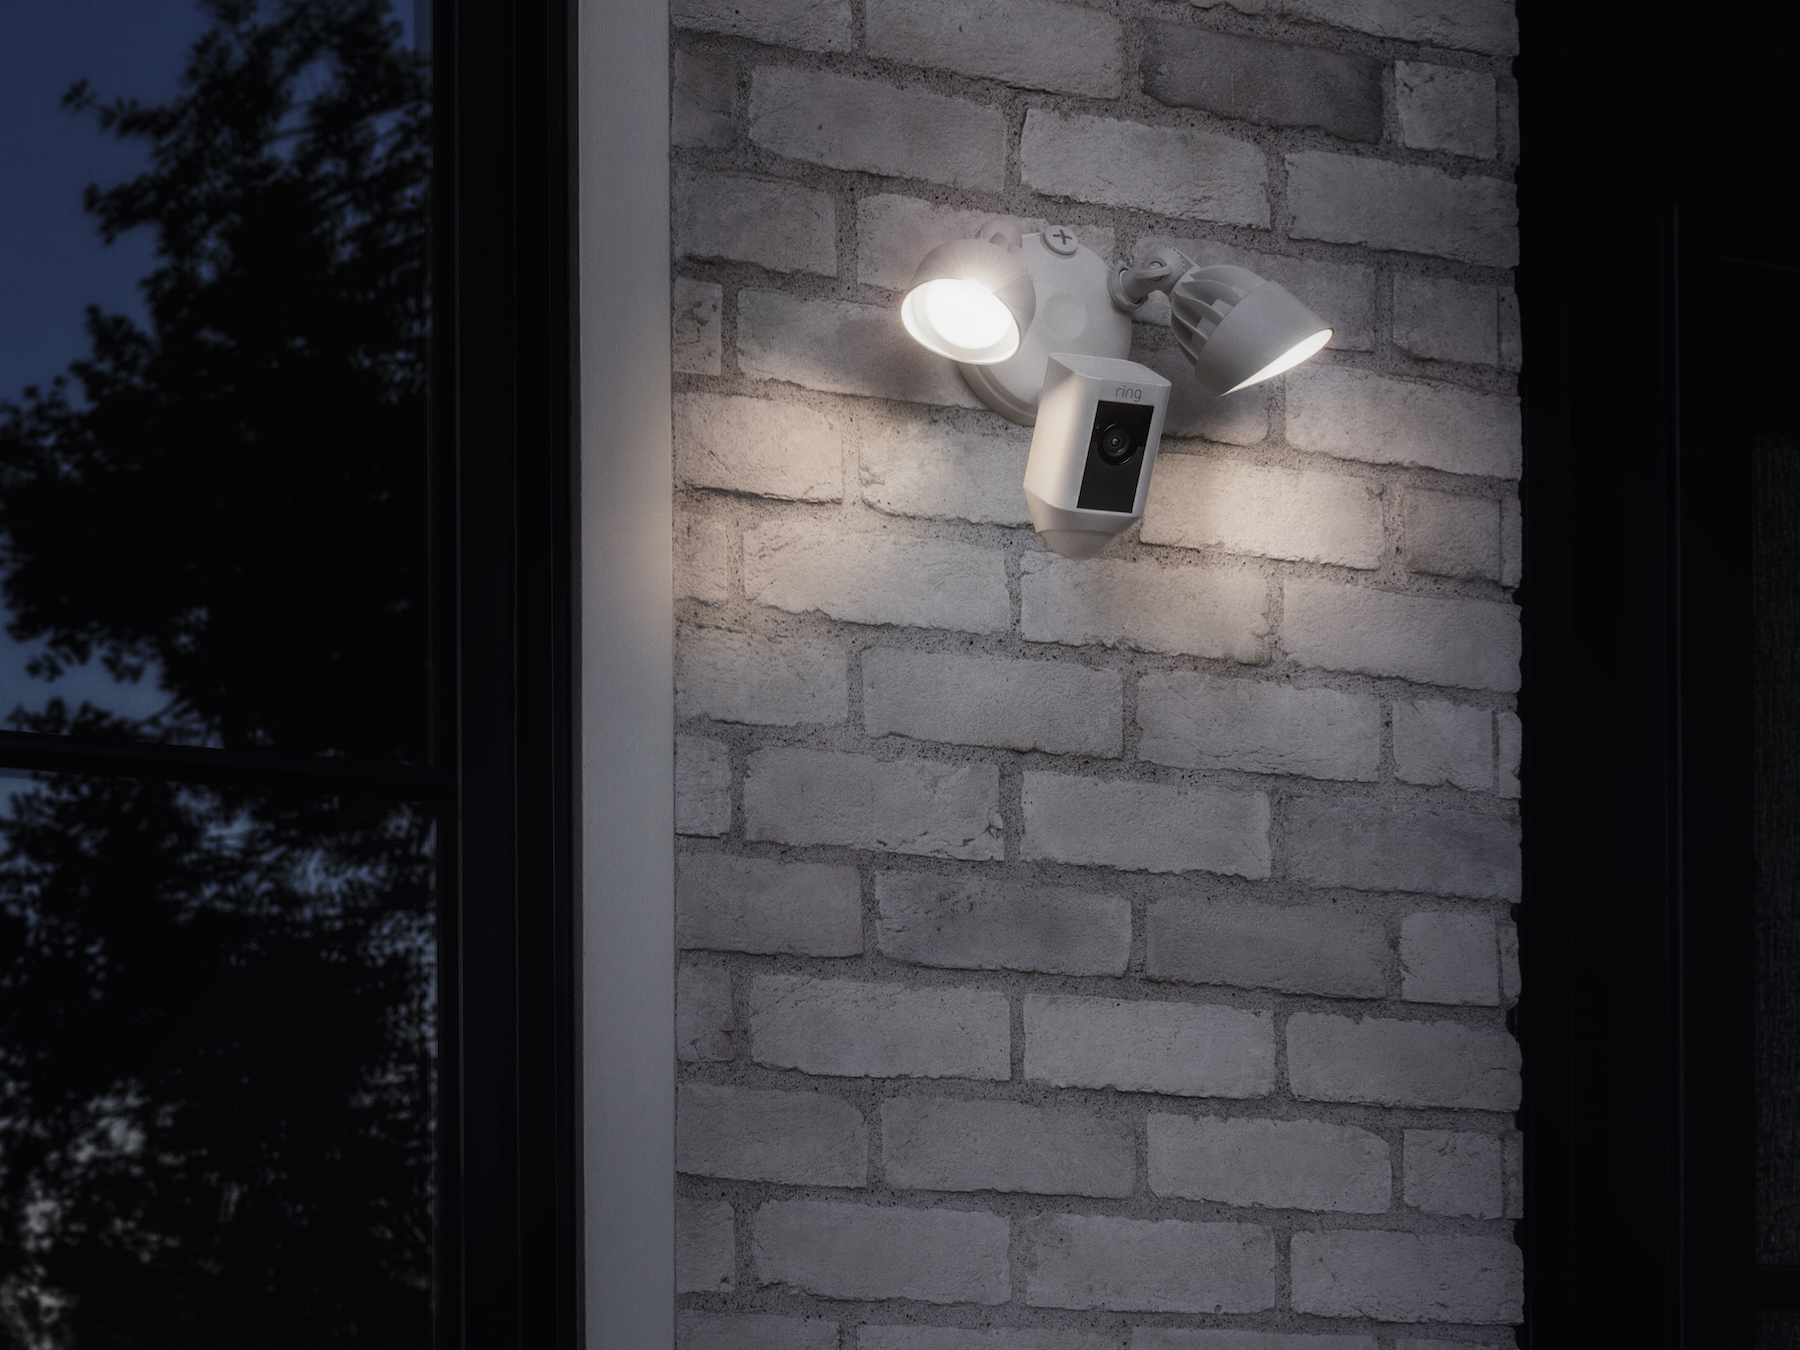 Rings Floodlight Cam Is A Security Camera With An Integrated Wiring The Self Install So No Engineers Or Ring Employees Are Required To Come Round And Rig It Up Your Wall Available